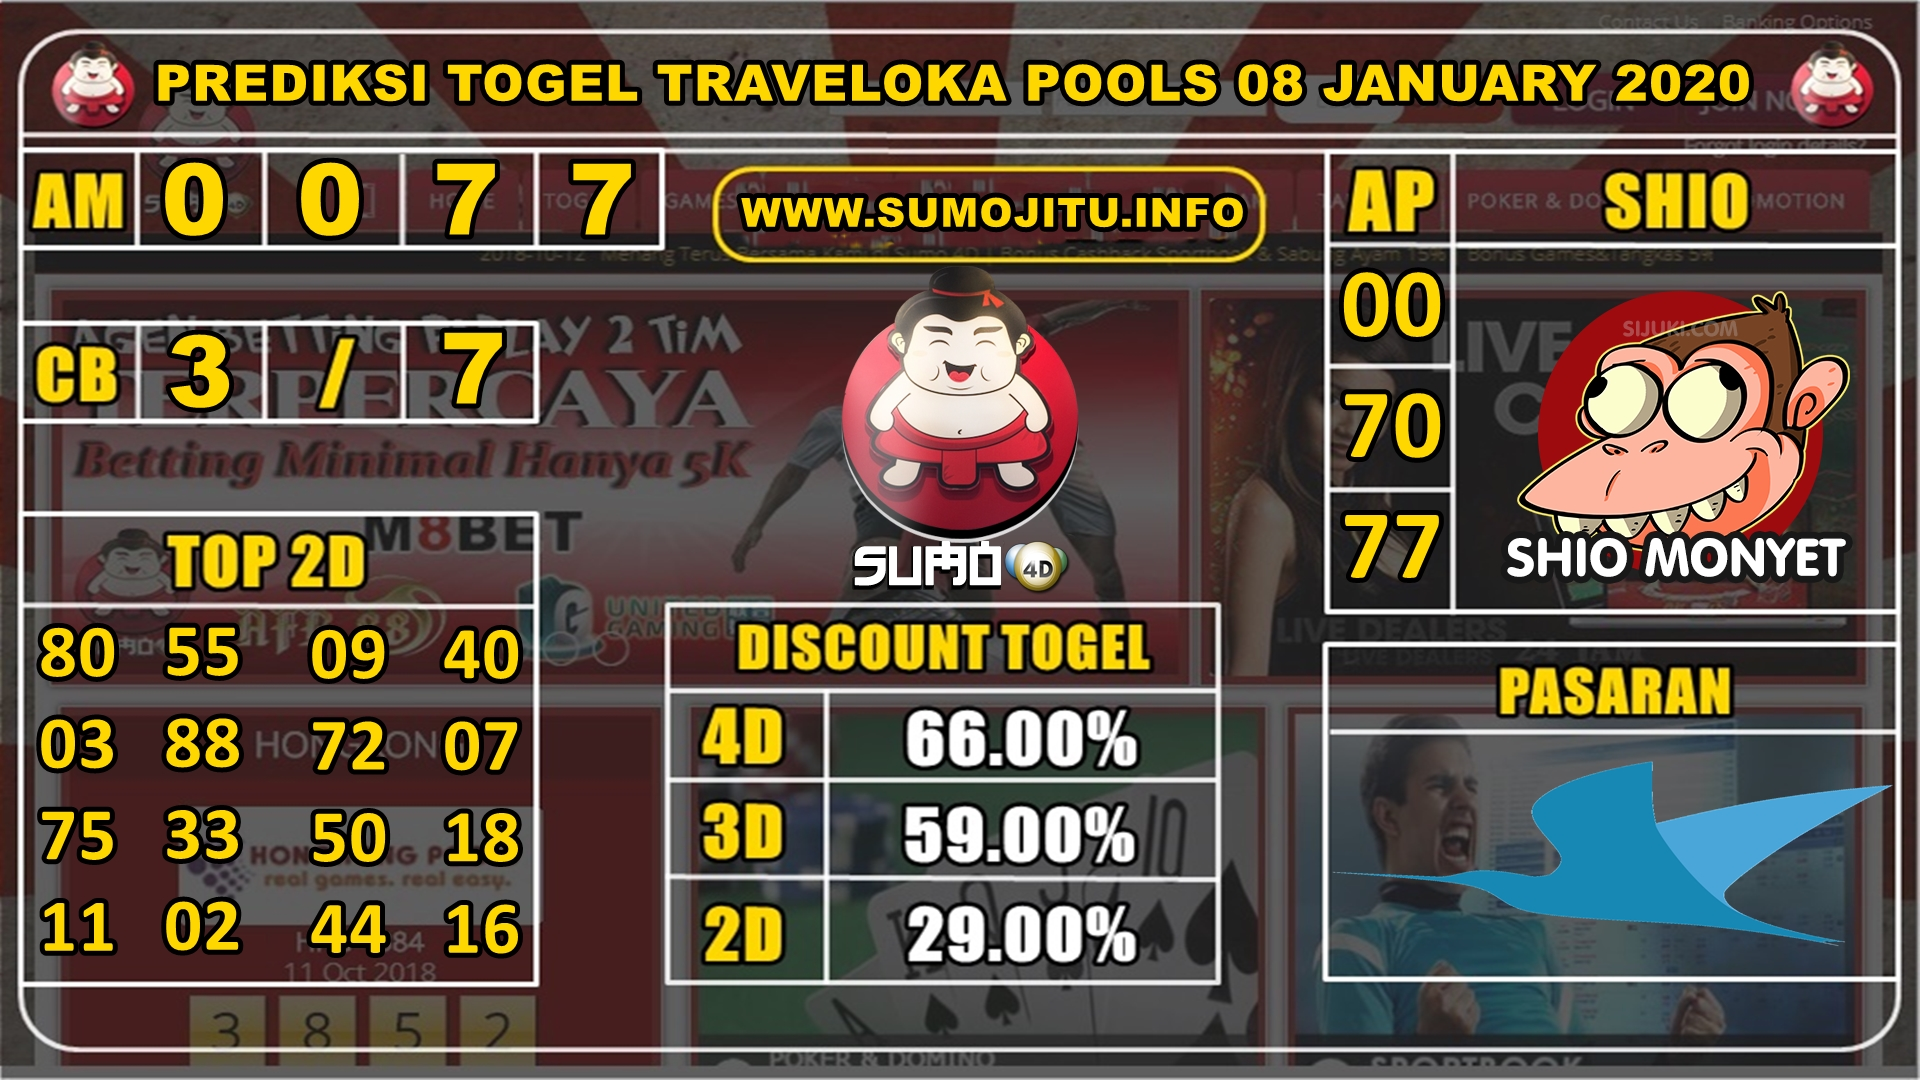 PREDIKSI TOGEL TRAVELOKA POOLS 08 JANUARY 2020